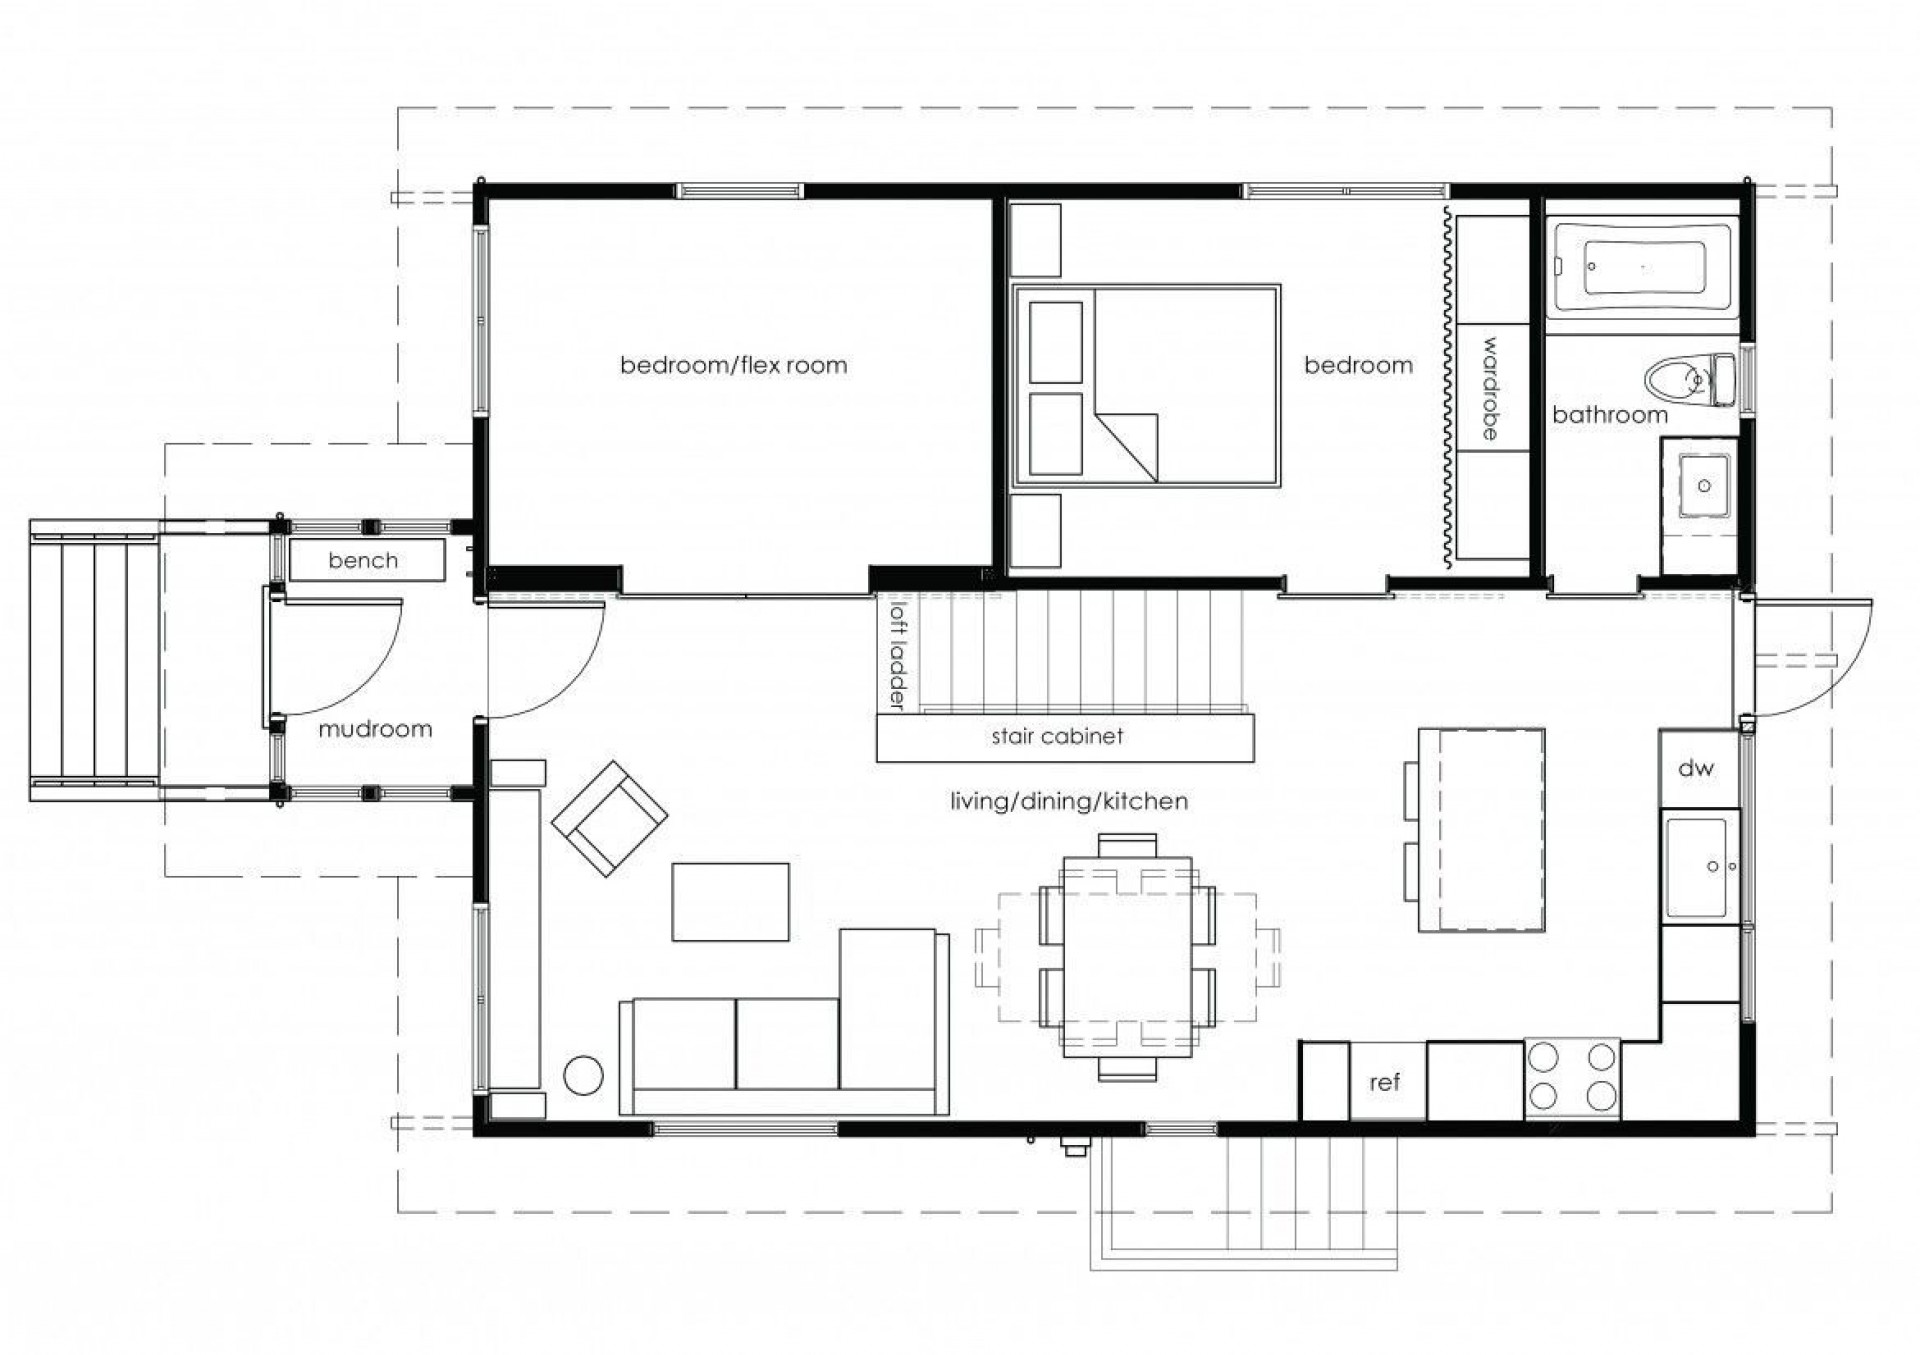 005 Top Free Floor Plan Template Image  Excel Home House Sample1920